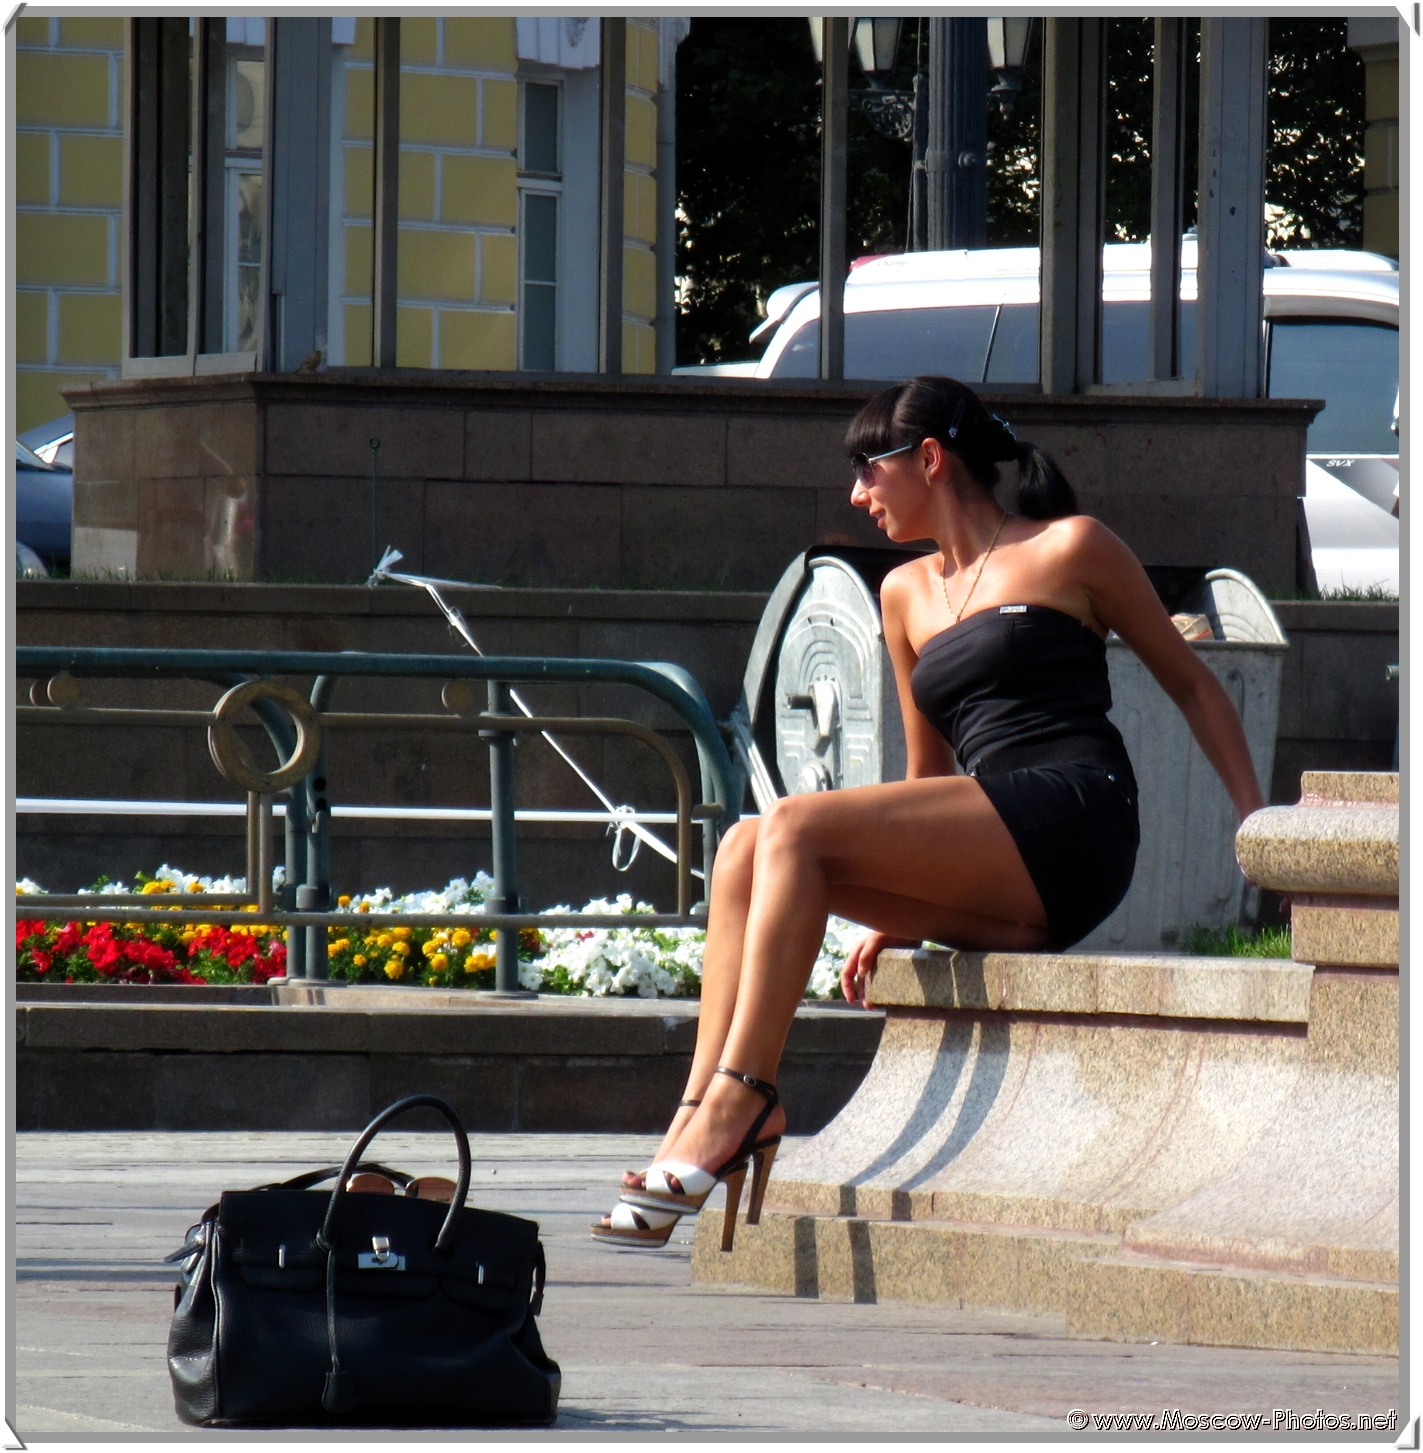 Moscow Girl on the Street